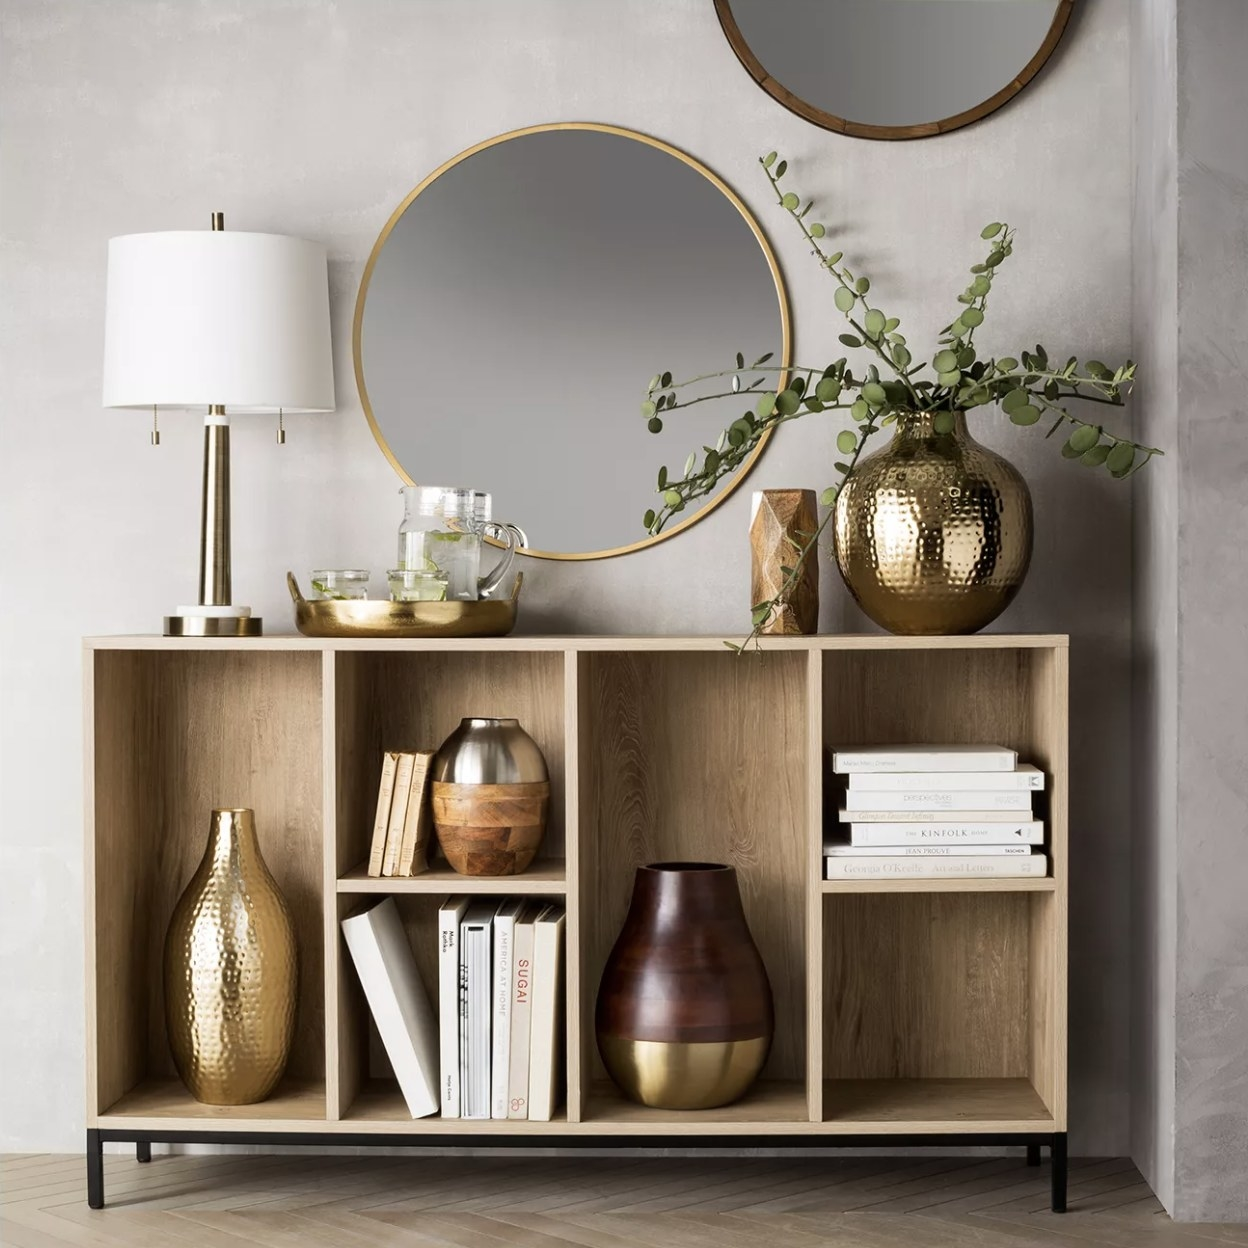 The gold frame circle mirror hung on a wall